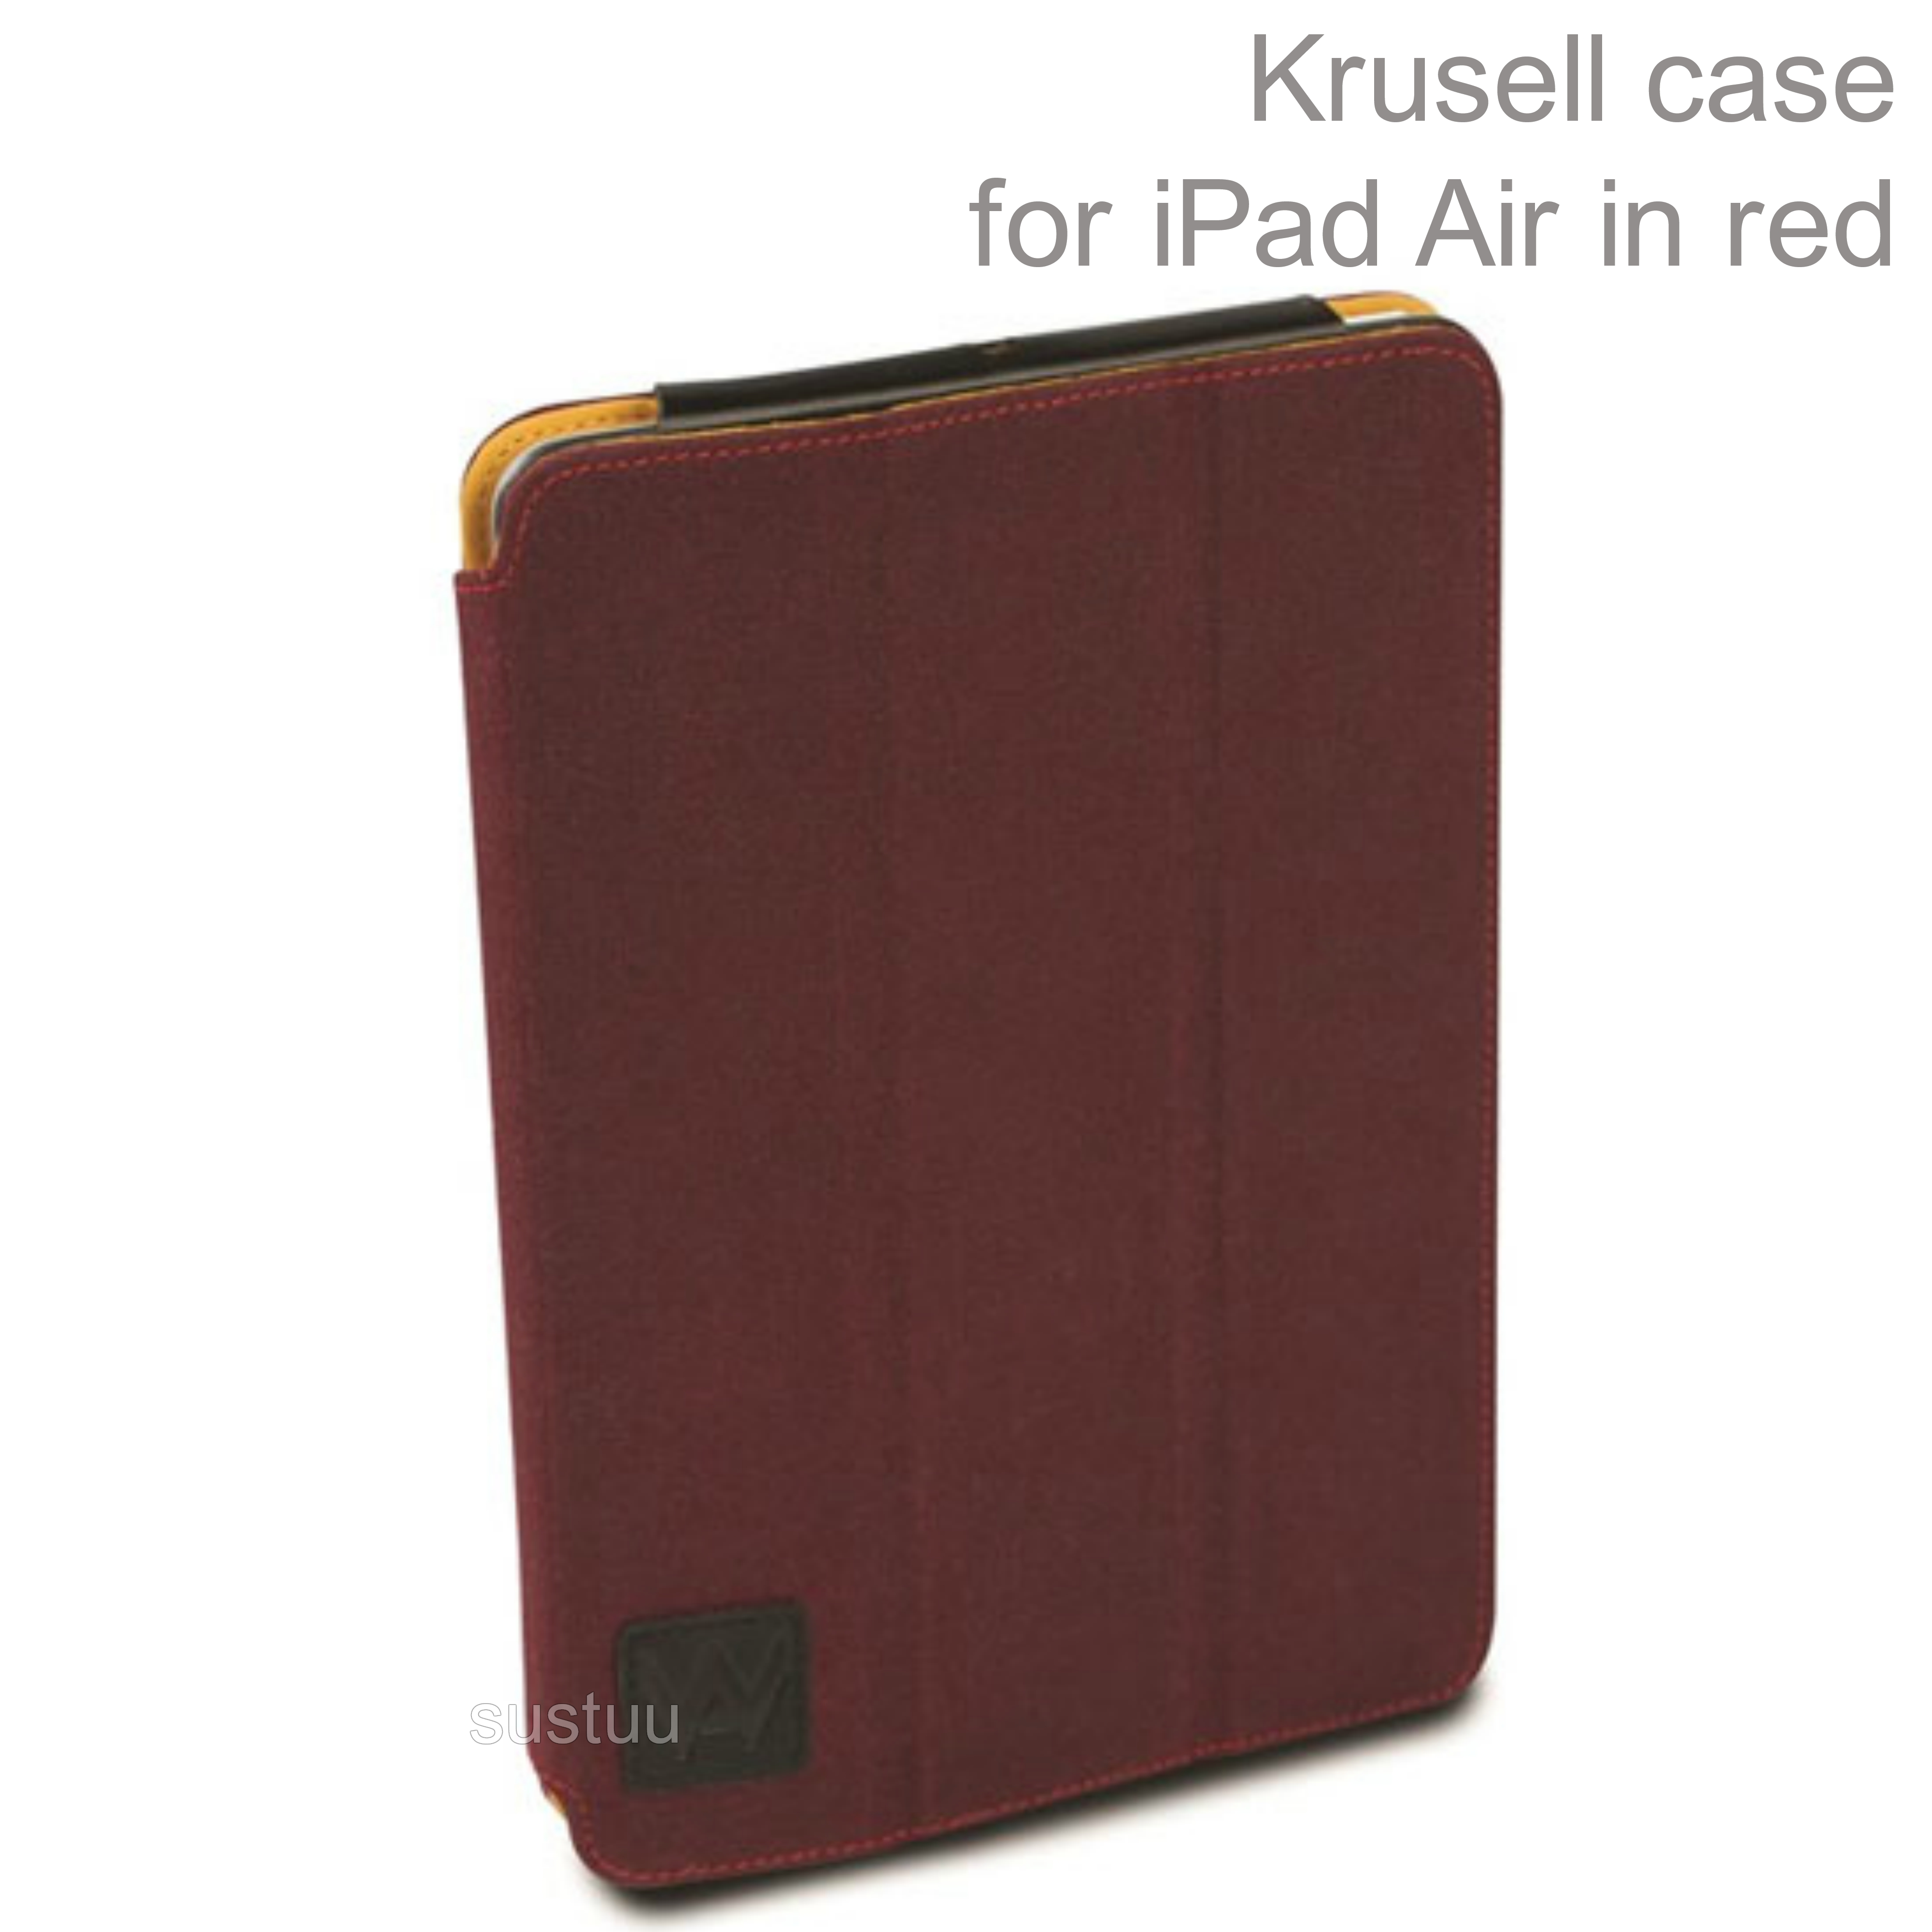 Krusell Textured Canvas Leather Flip Case Cover | Water Splash Proof | iPad Air- Red